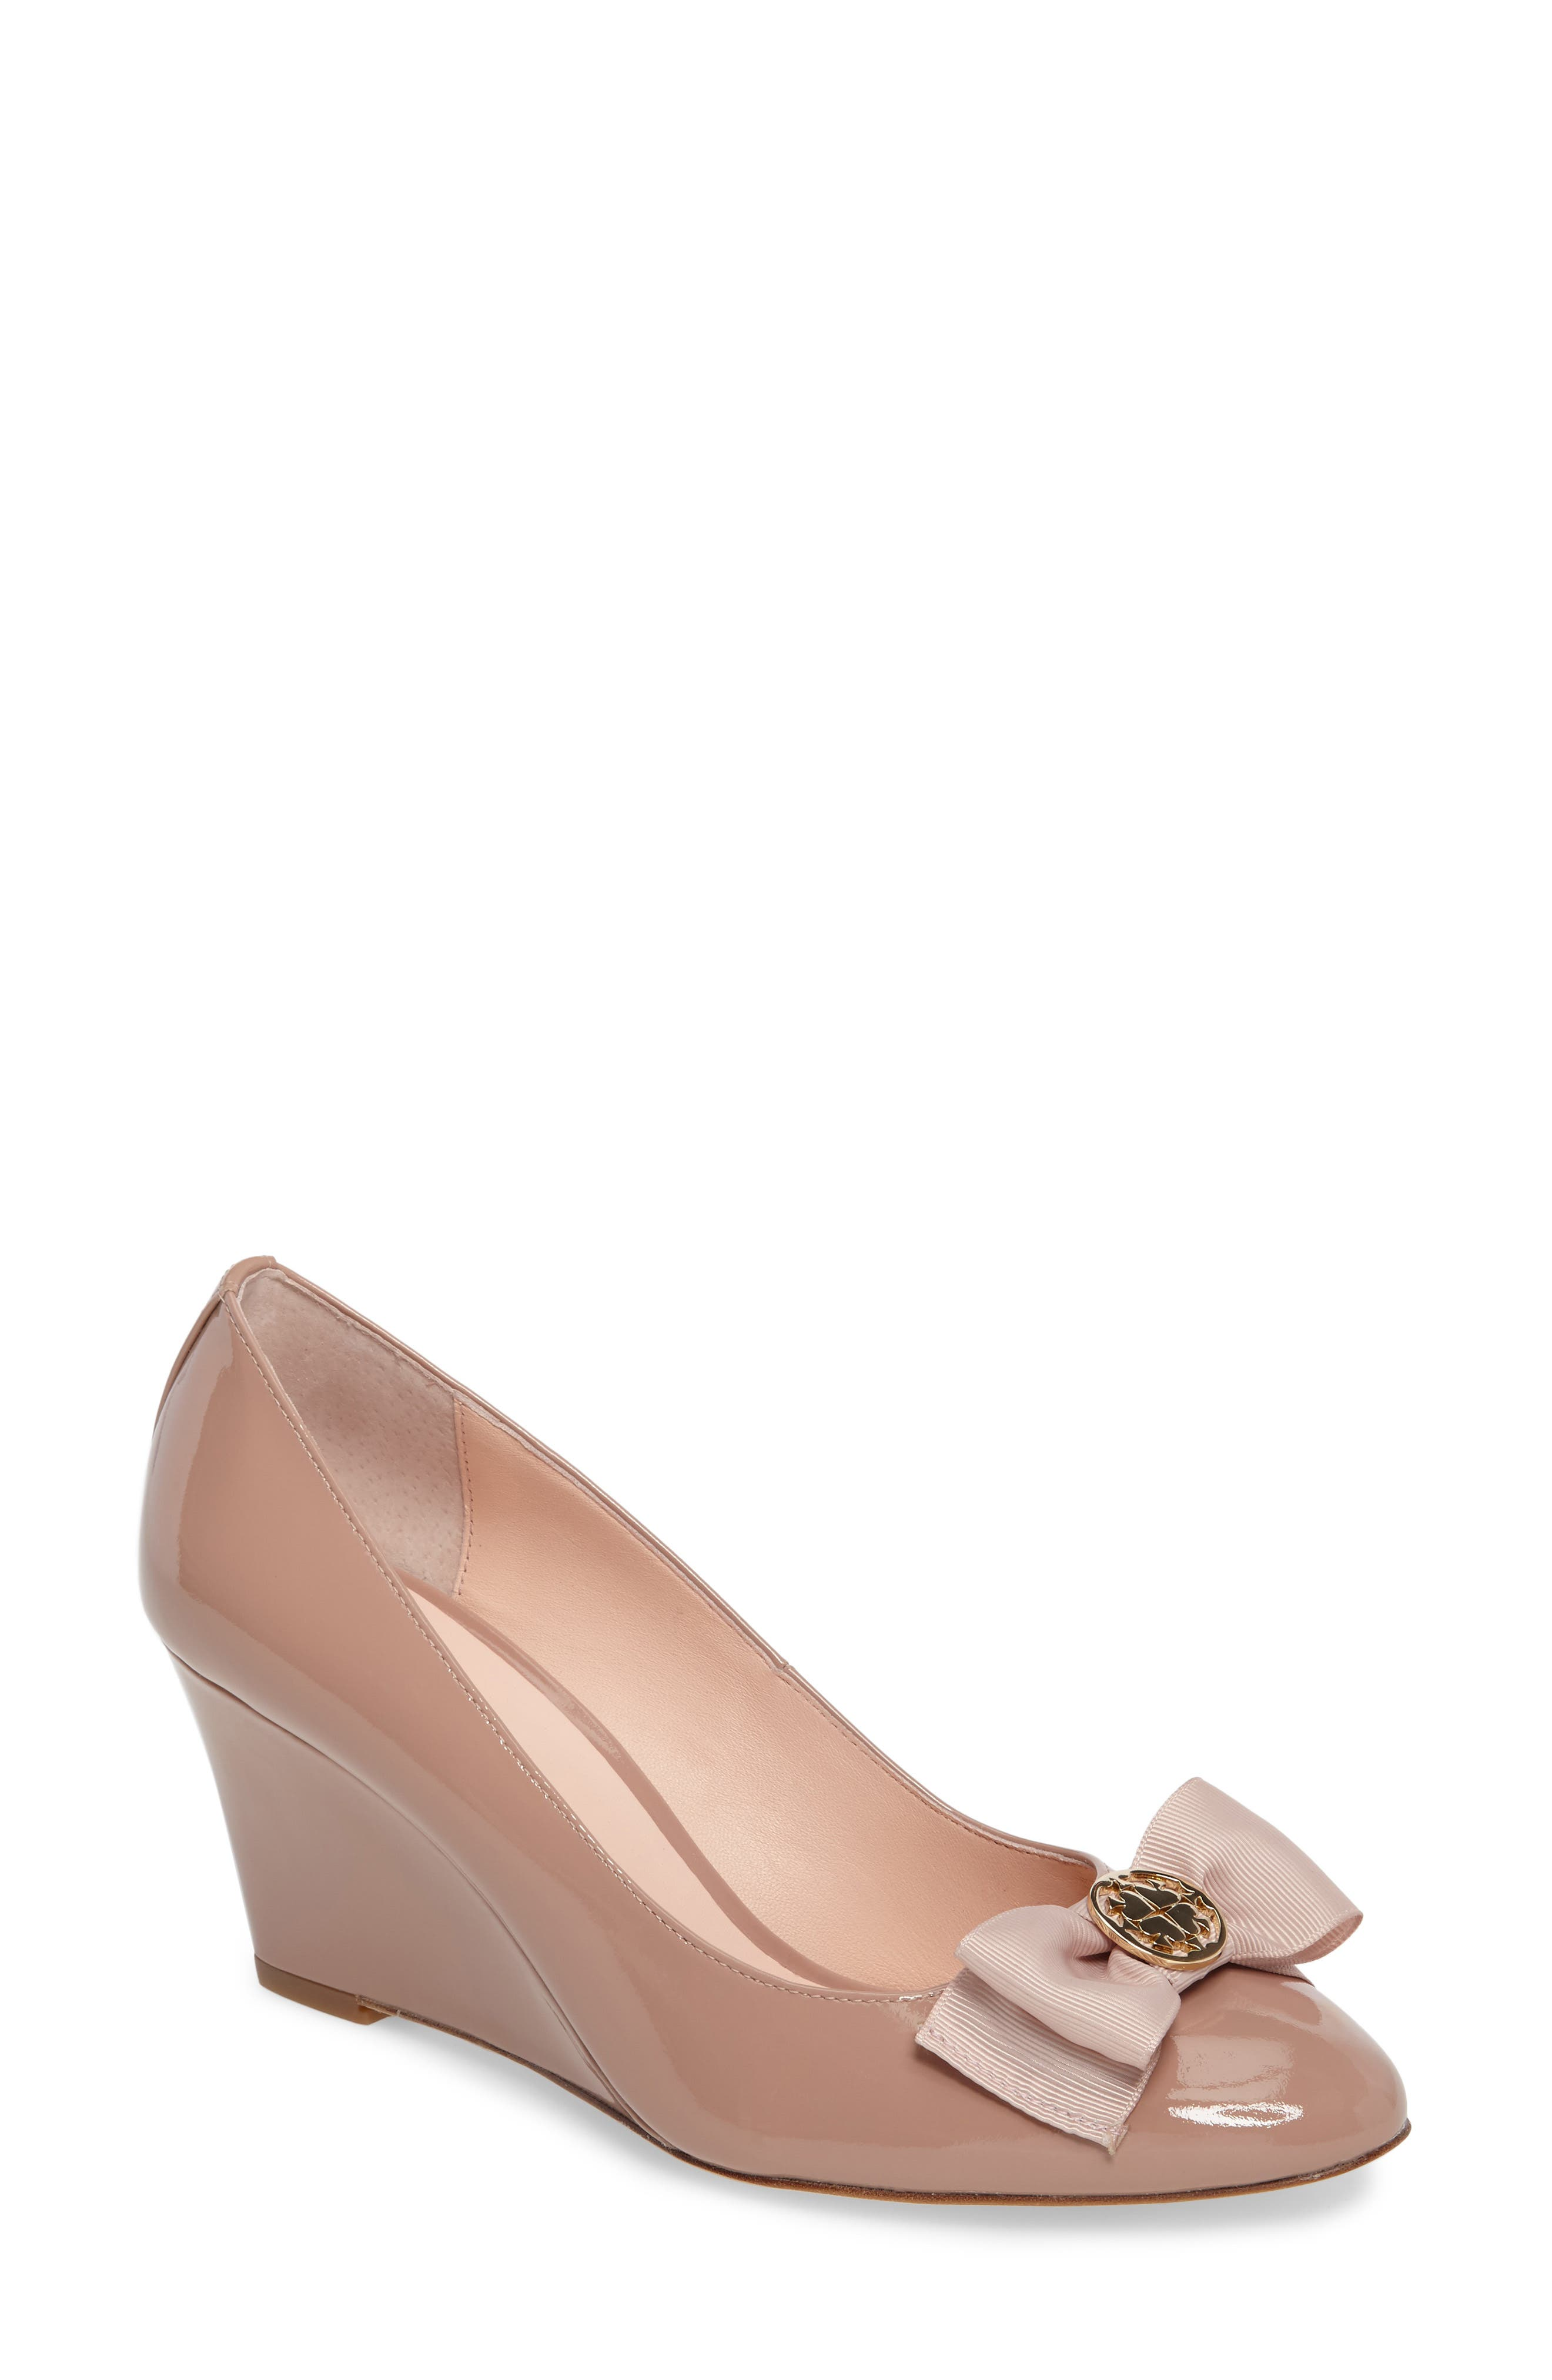 Main Image - kate spade new york wescott wedge pump (Women)